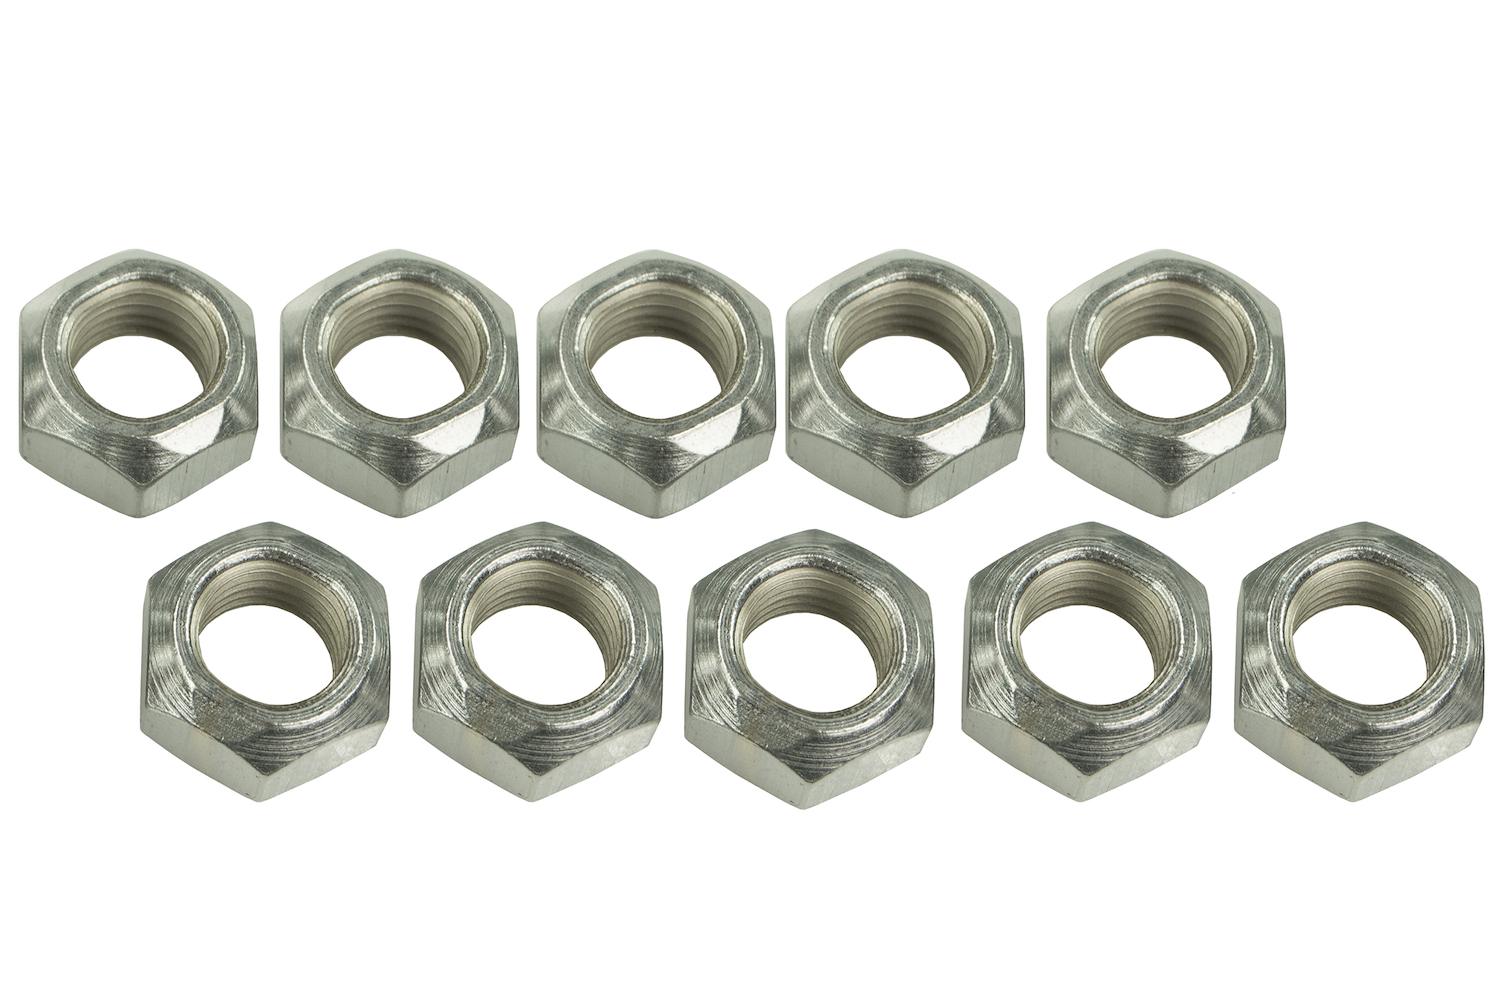 Radius Arm Nut Kit